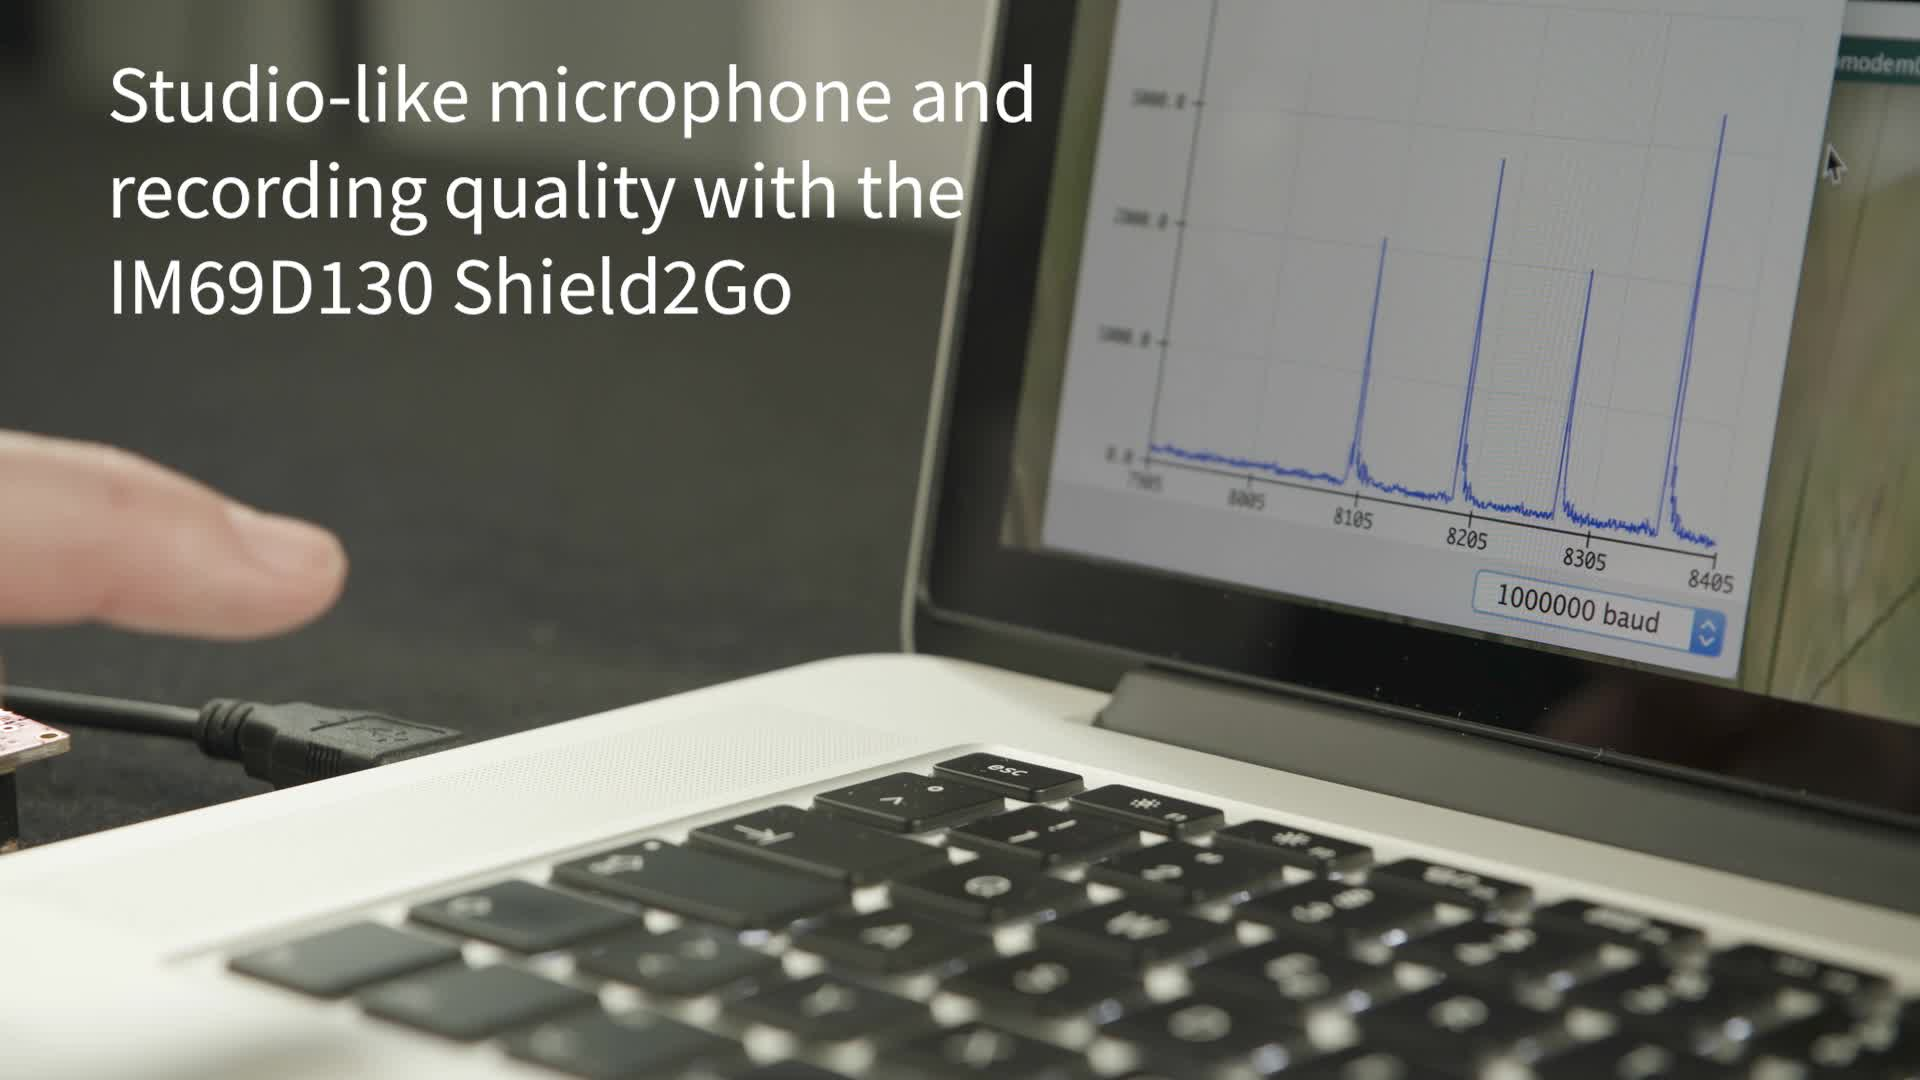 XENSIV™ IM69D130 microphone Shield2Go - Get studio recording quality within a few minutes.